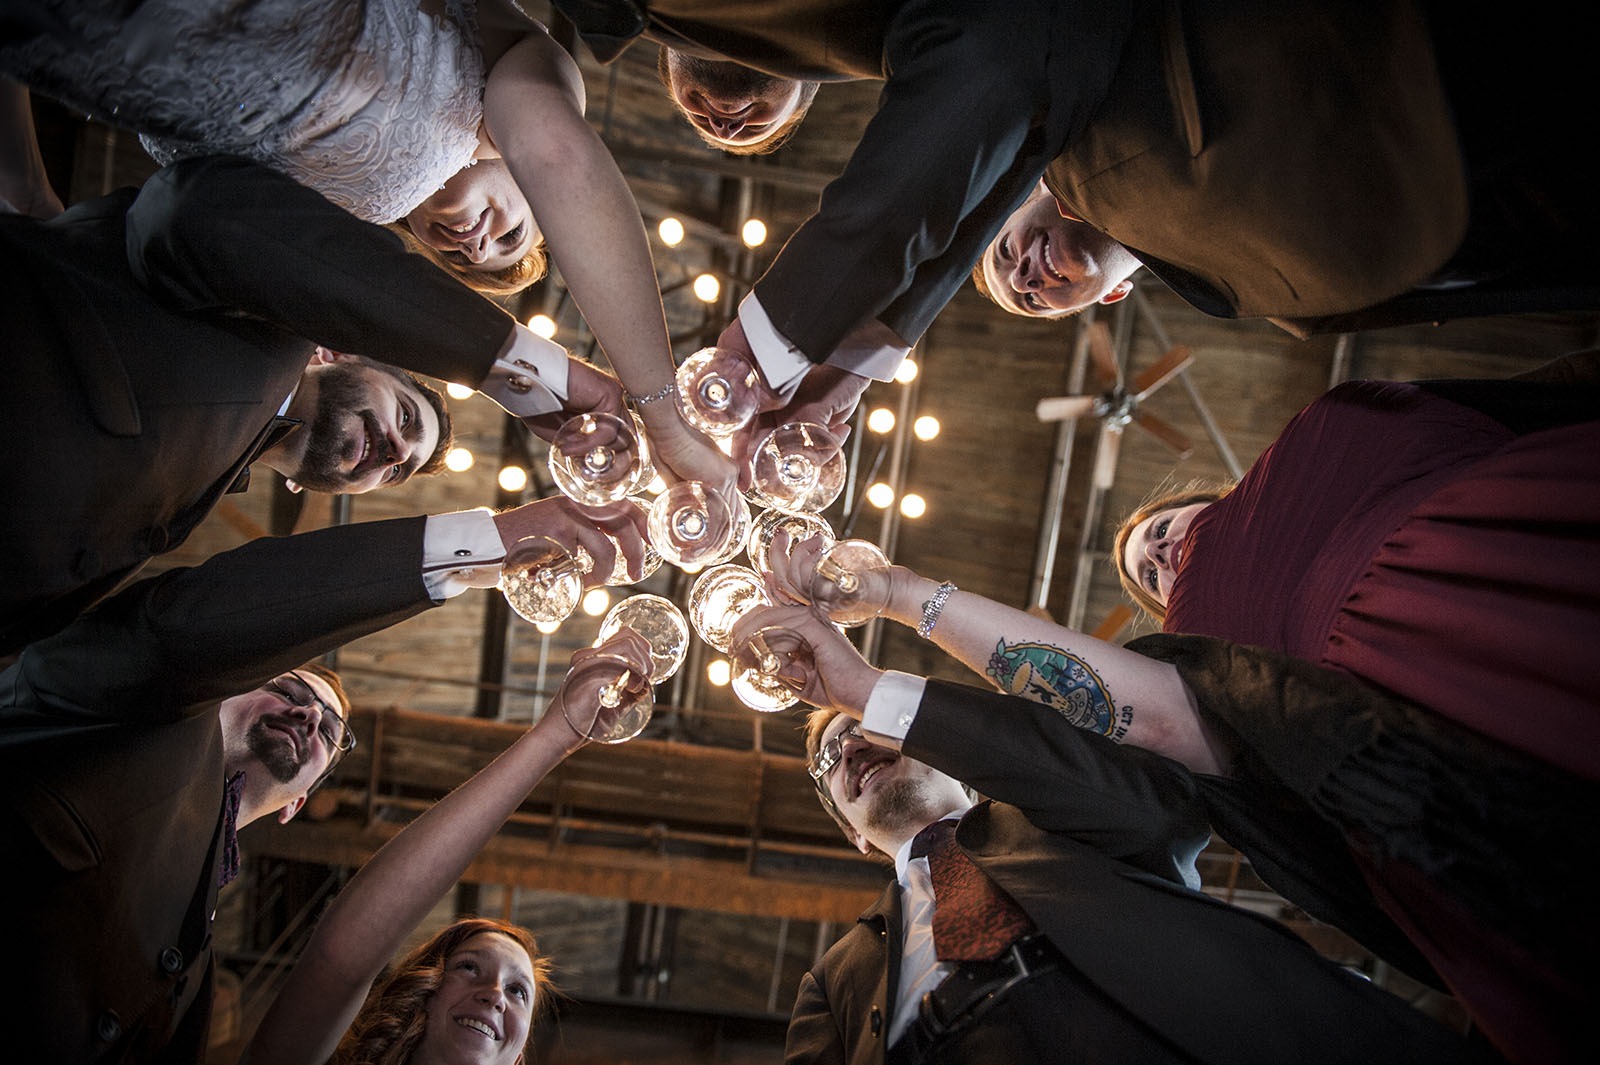 Bridal party clinking glasses at Mile High Station in Denver, CO, photographed from below